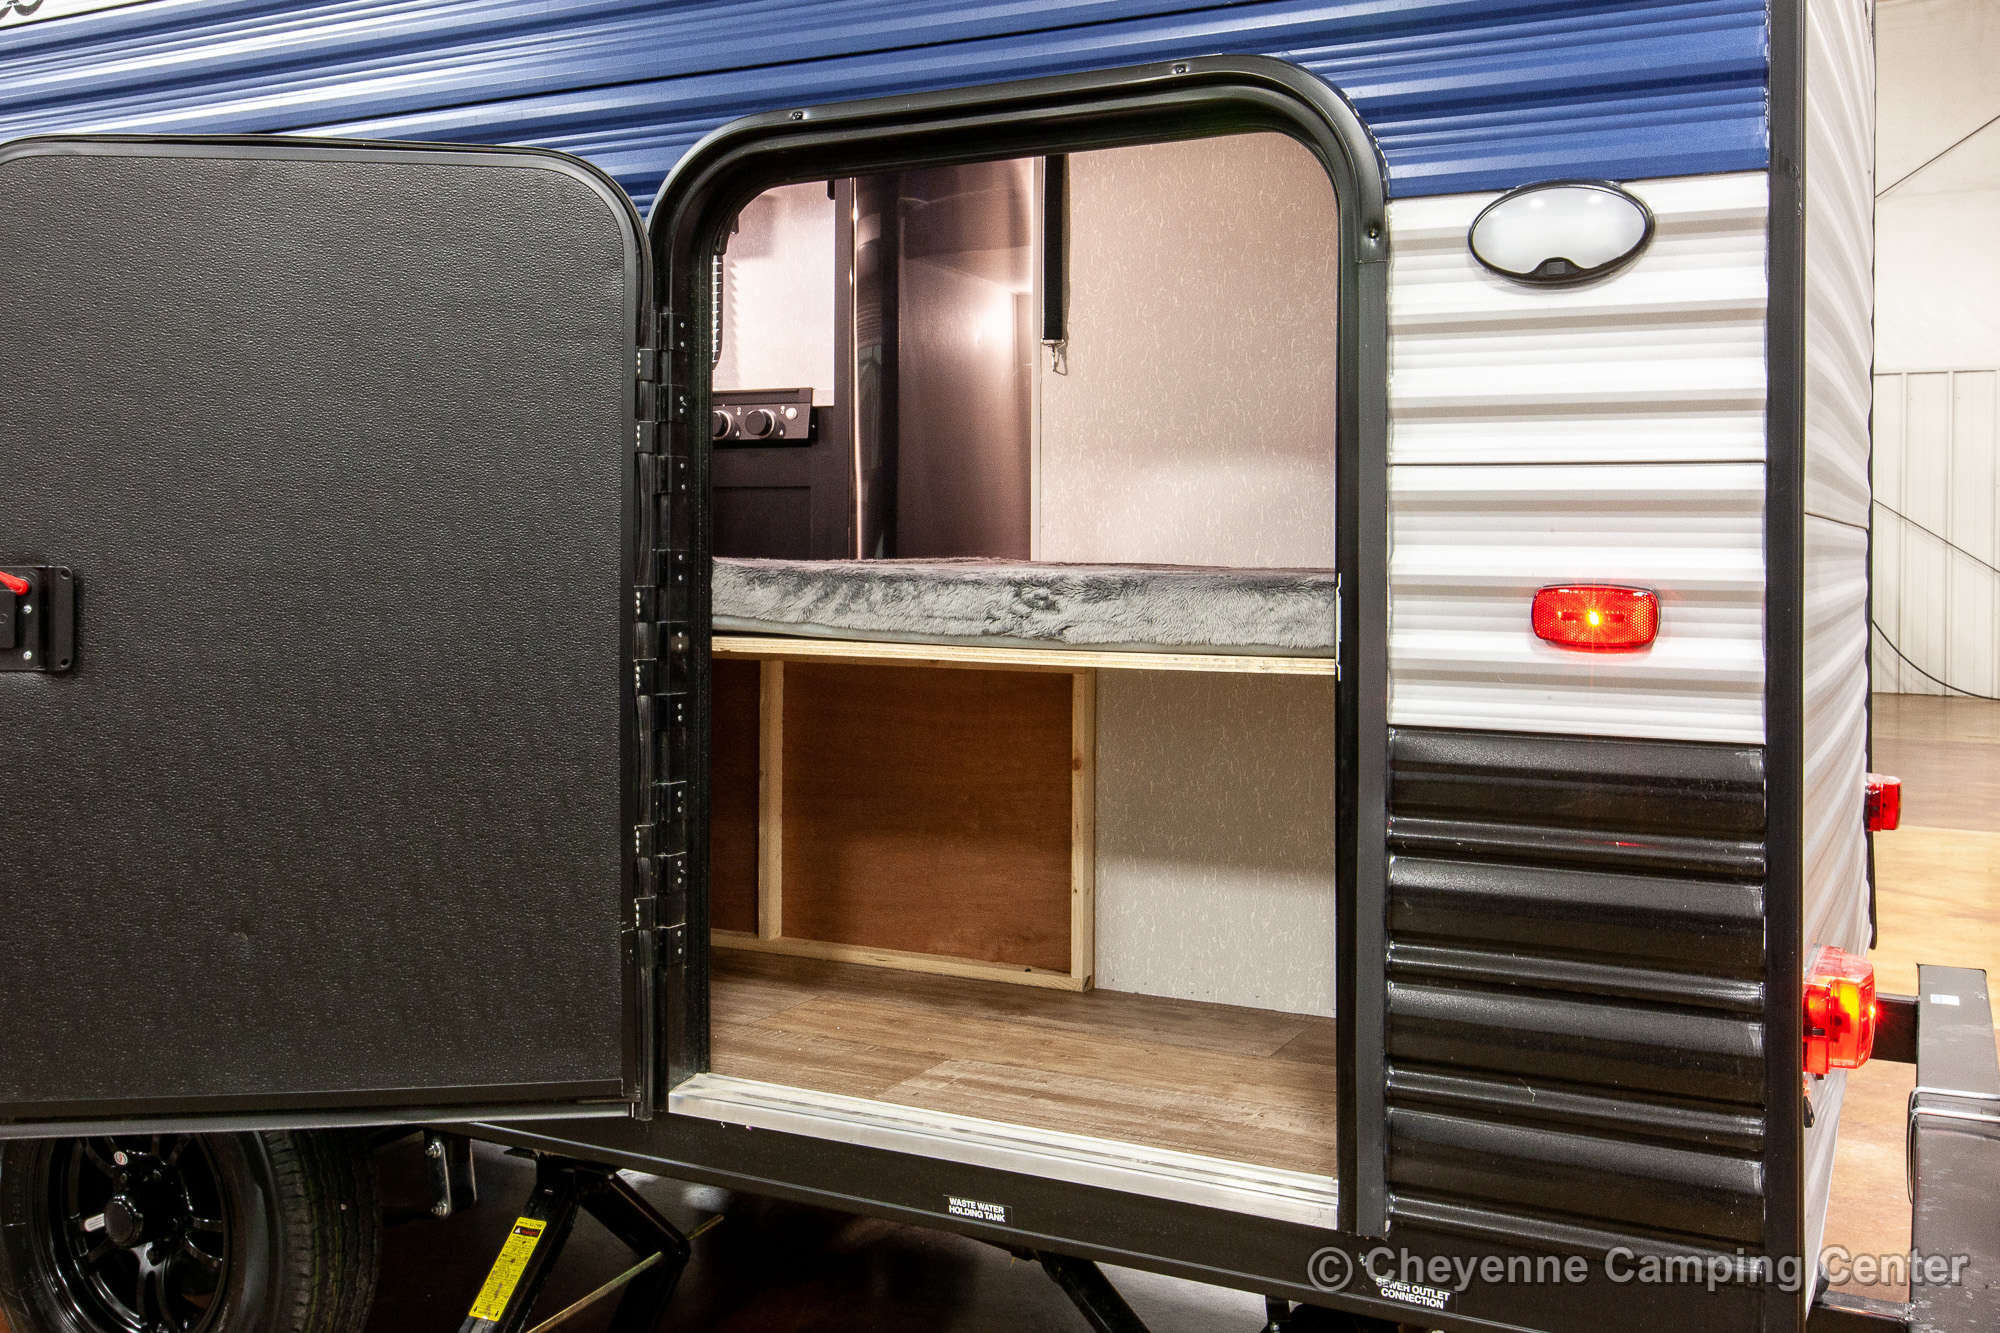 2022 Forest River Cherokee Wolf Pup 16BHS Bunkhouse Travel Trailer Exterior Image